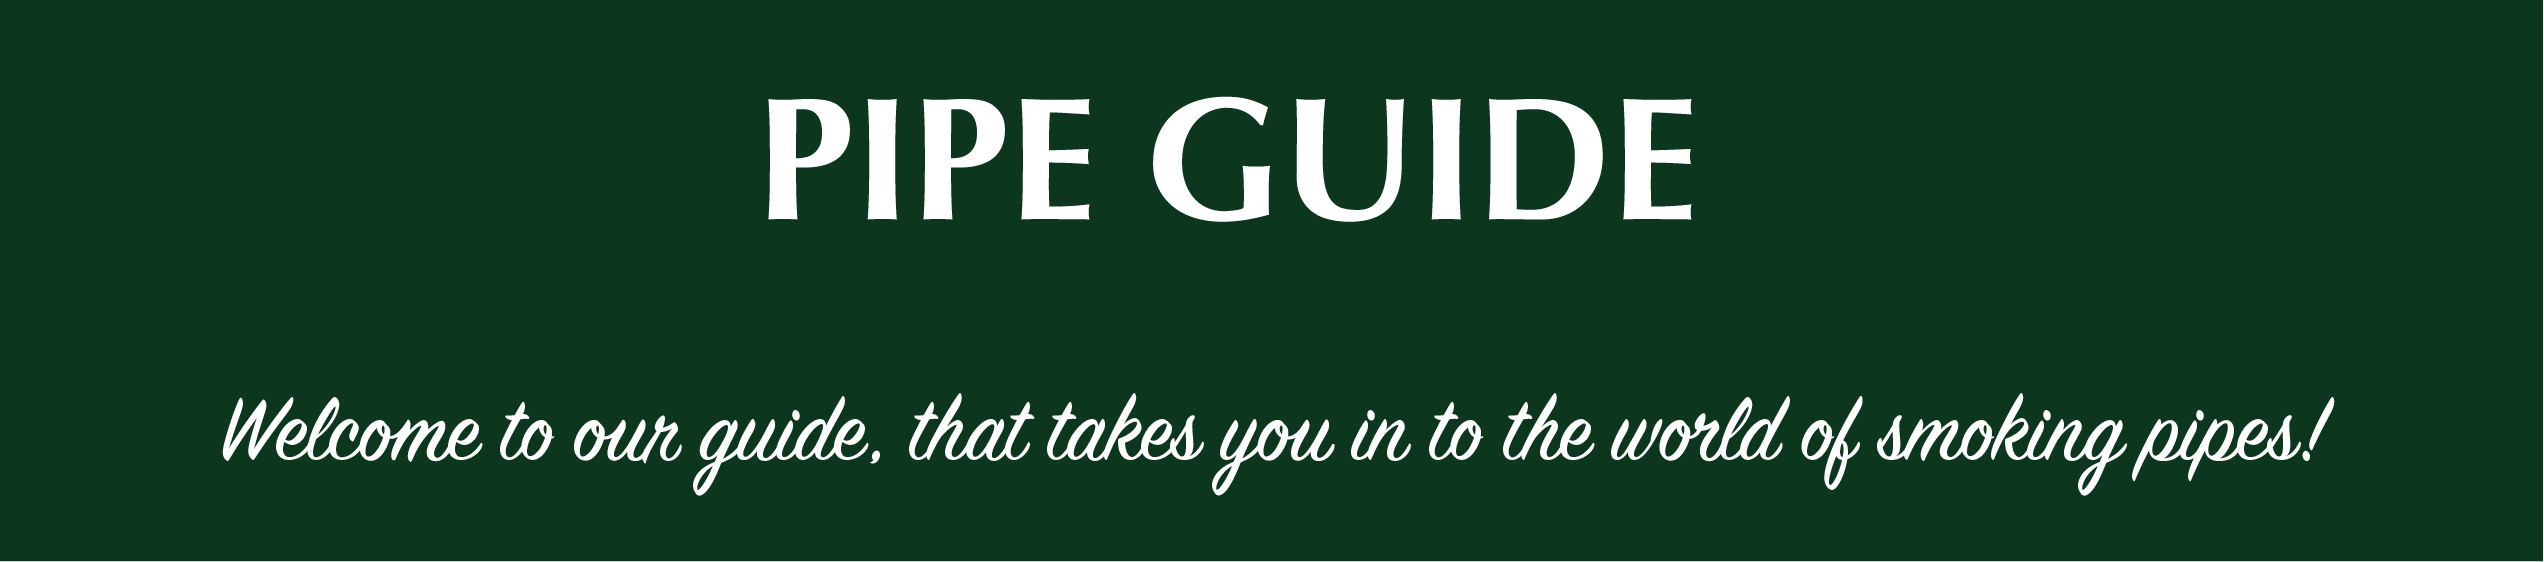 Green header for pipe guide with text